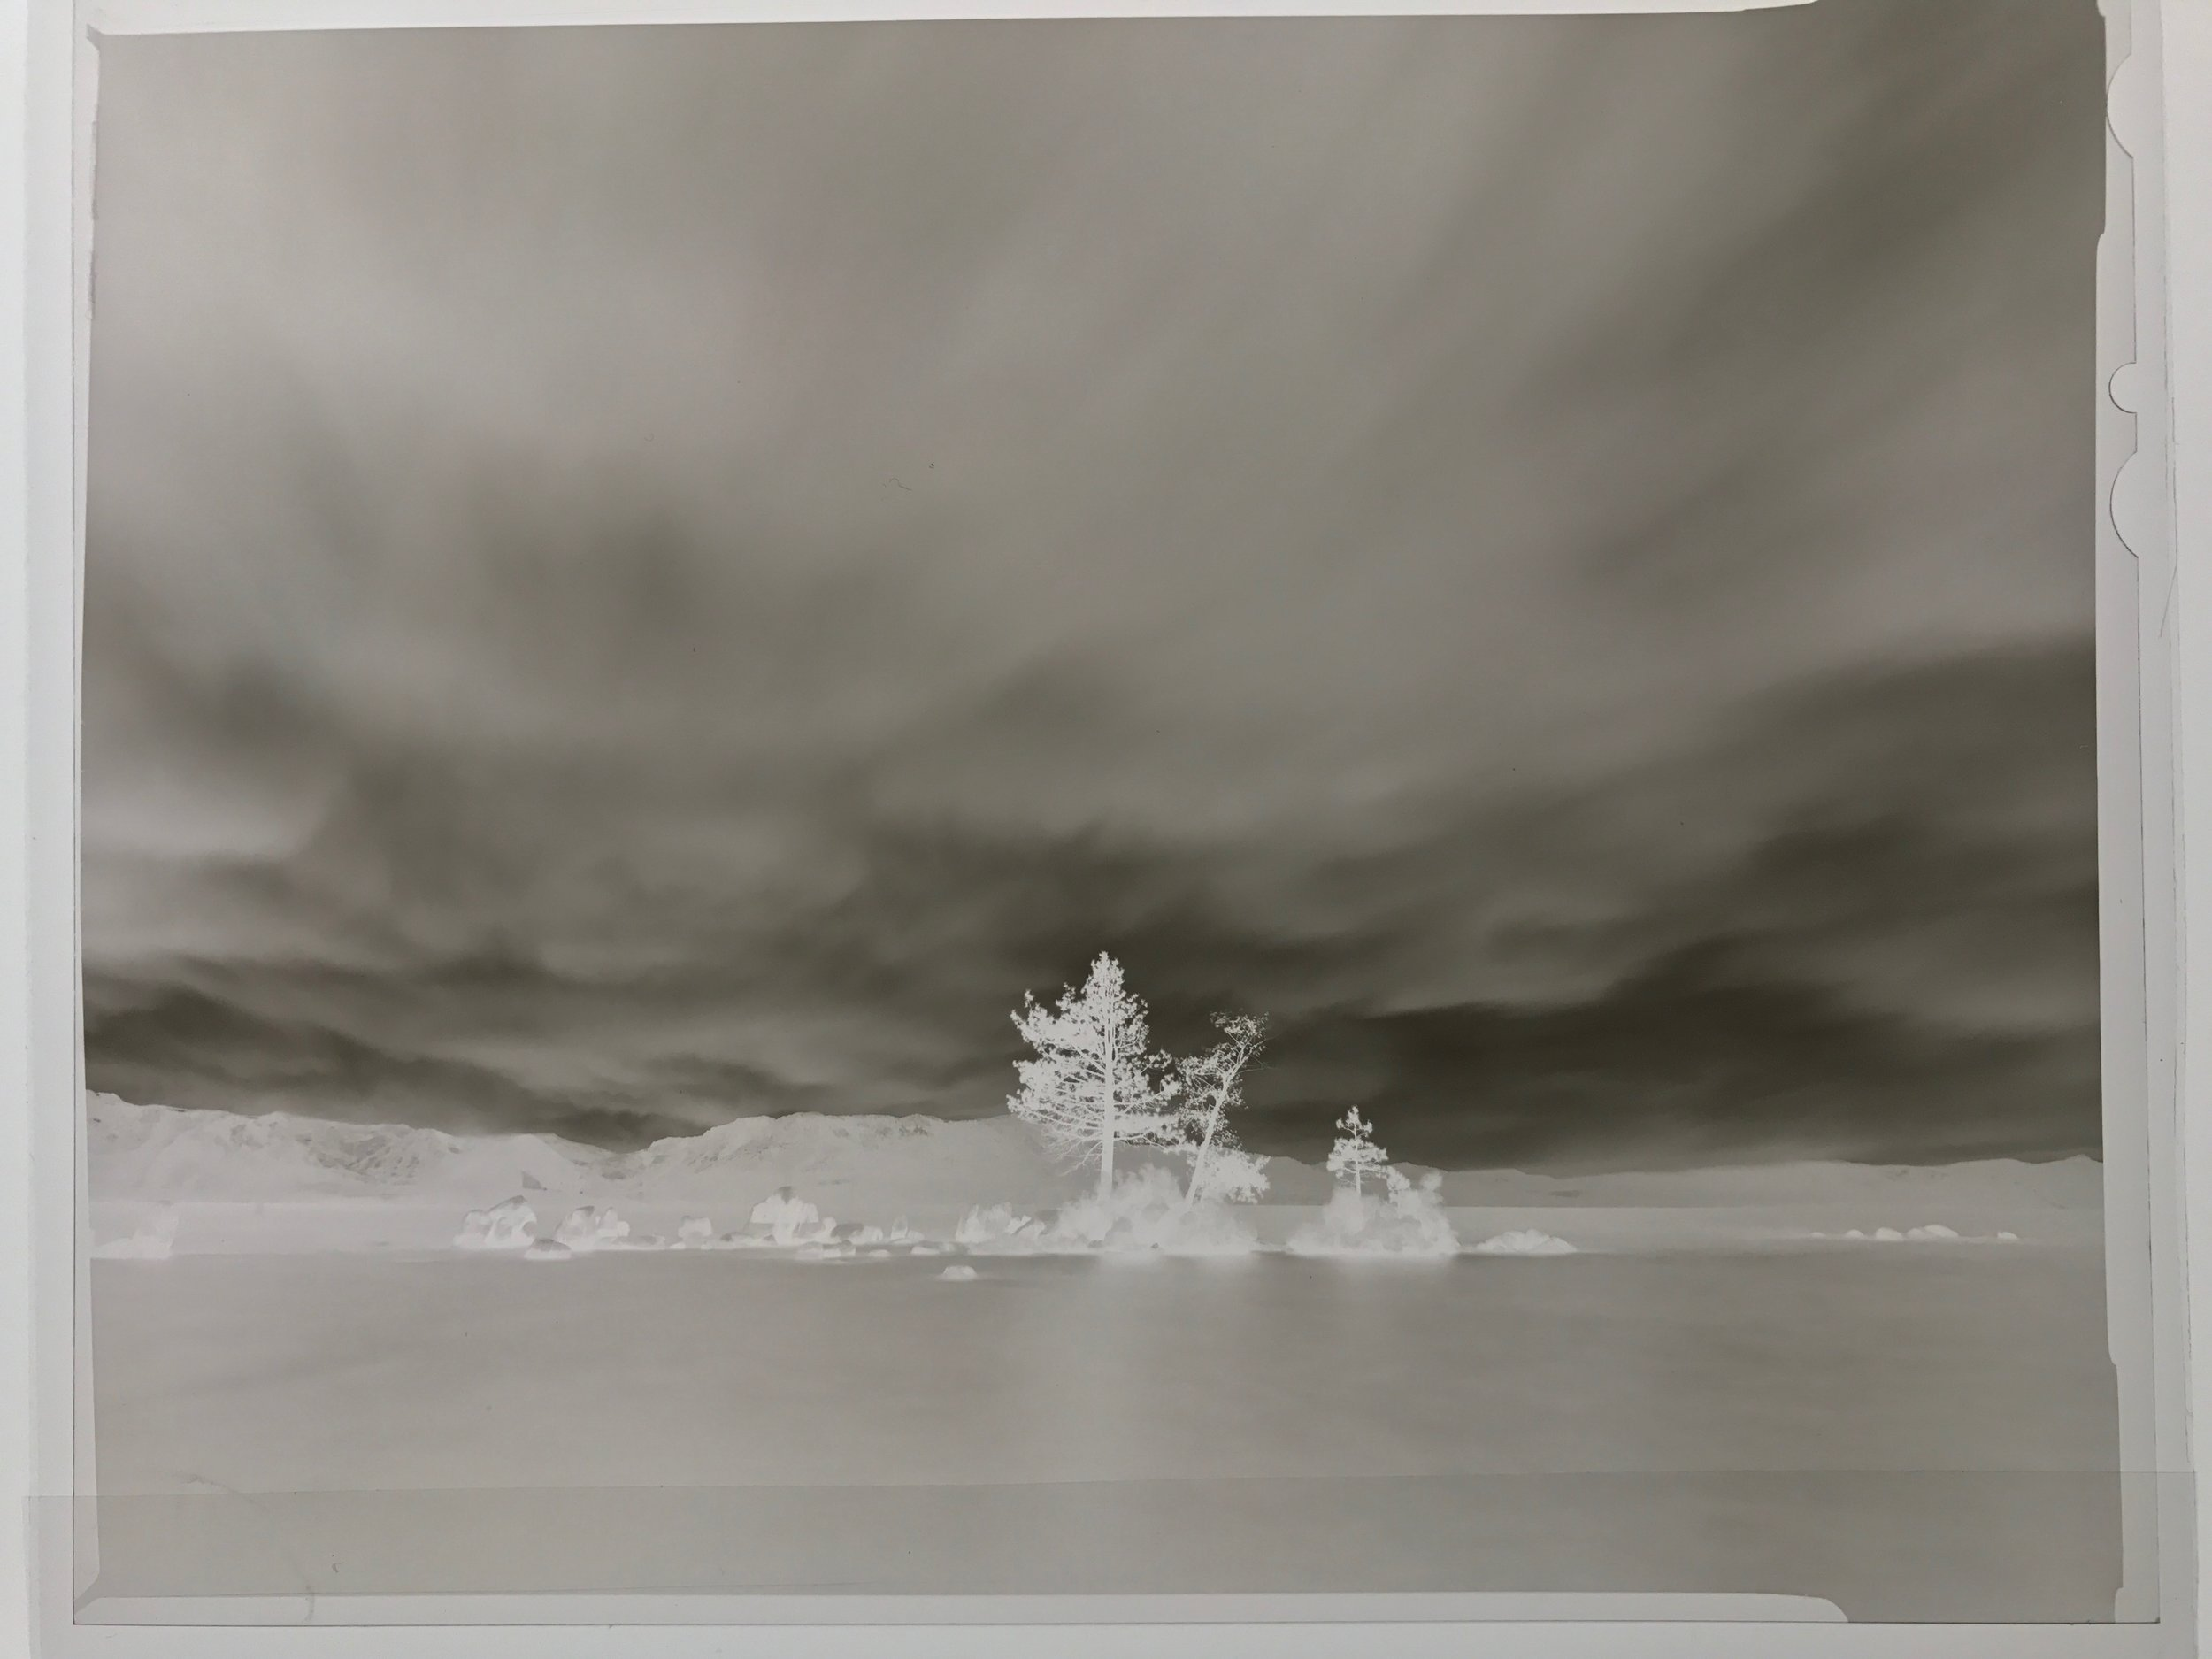 The Original Black and White Negative, Ilford FP4 4x5 inch (photographed with my iphone on the light table)